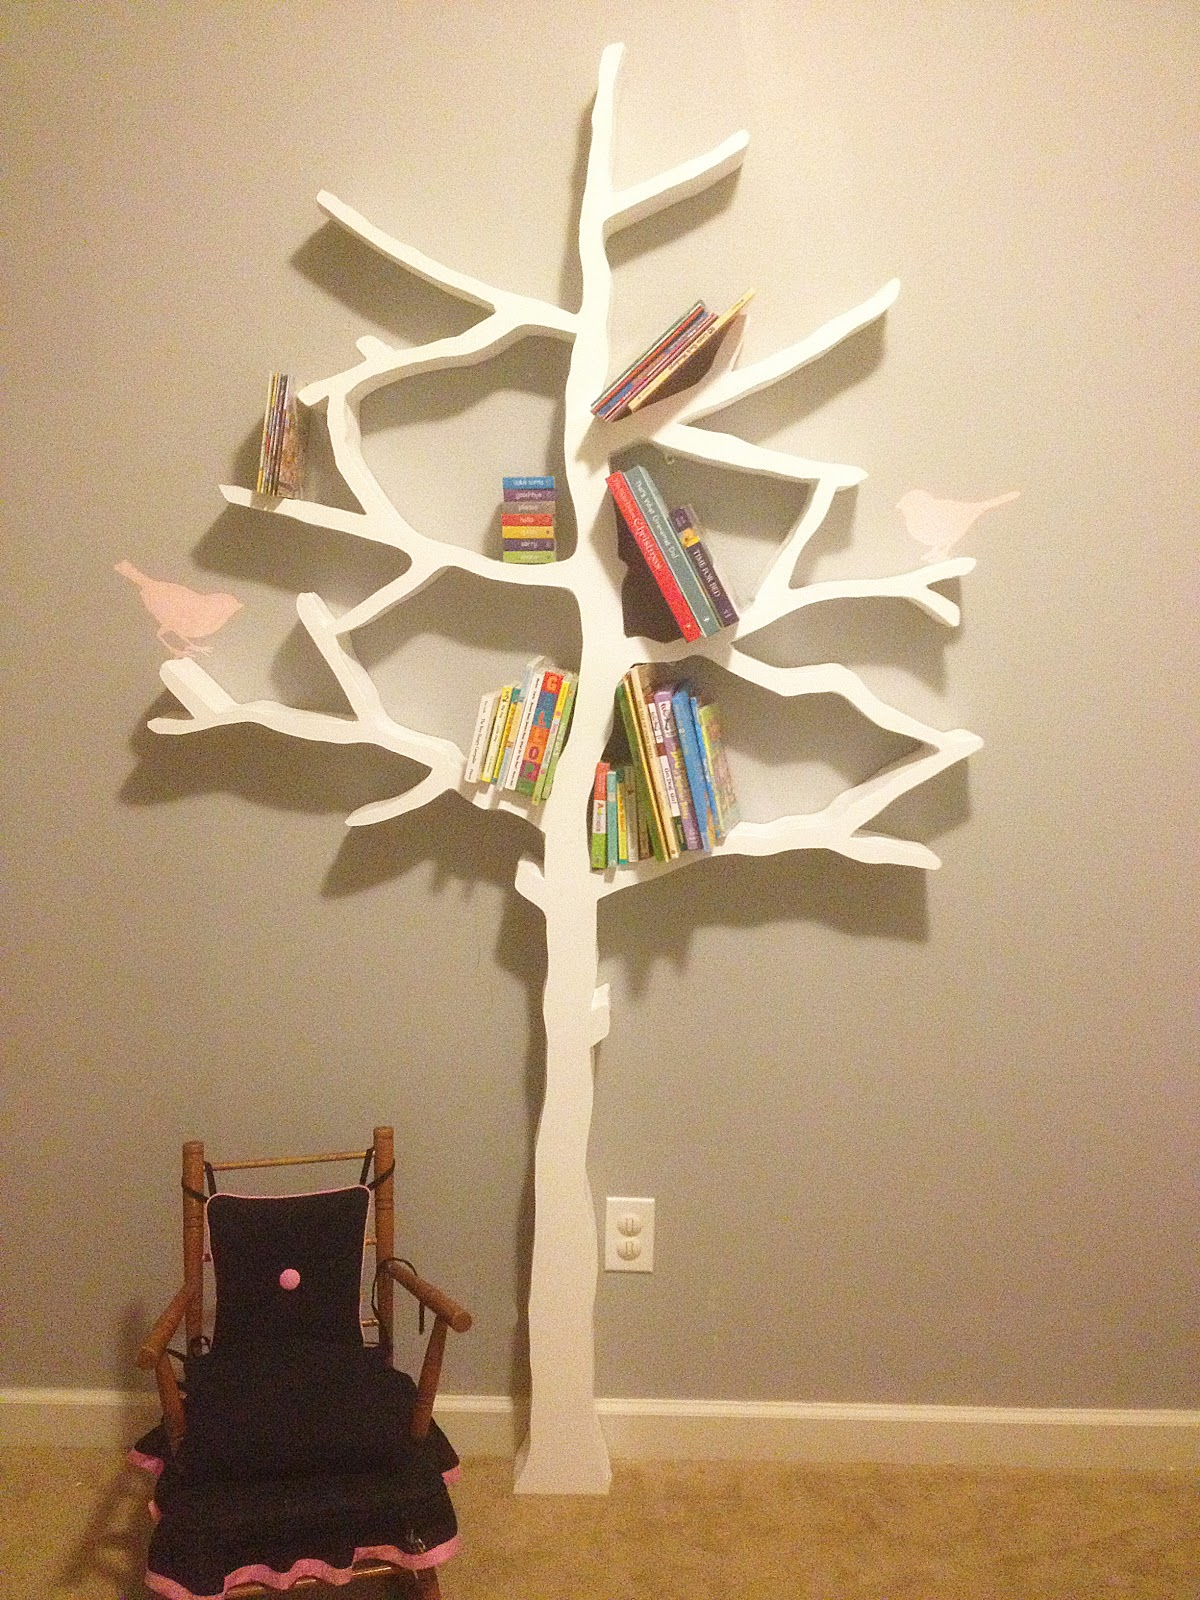 walls under construction diy tree bookshelf -